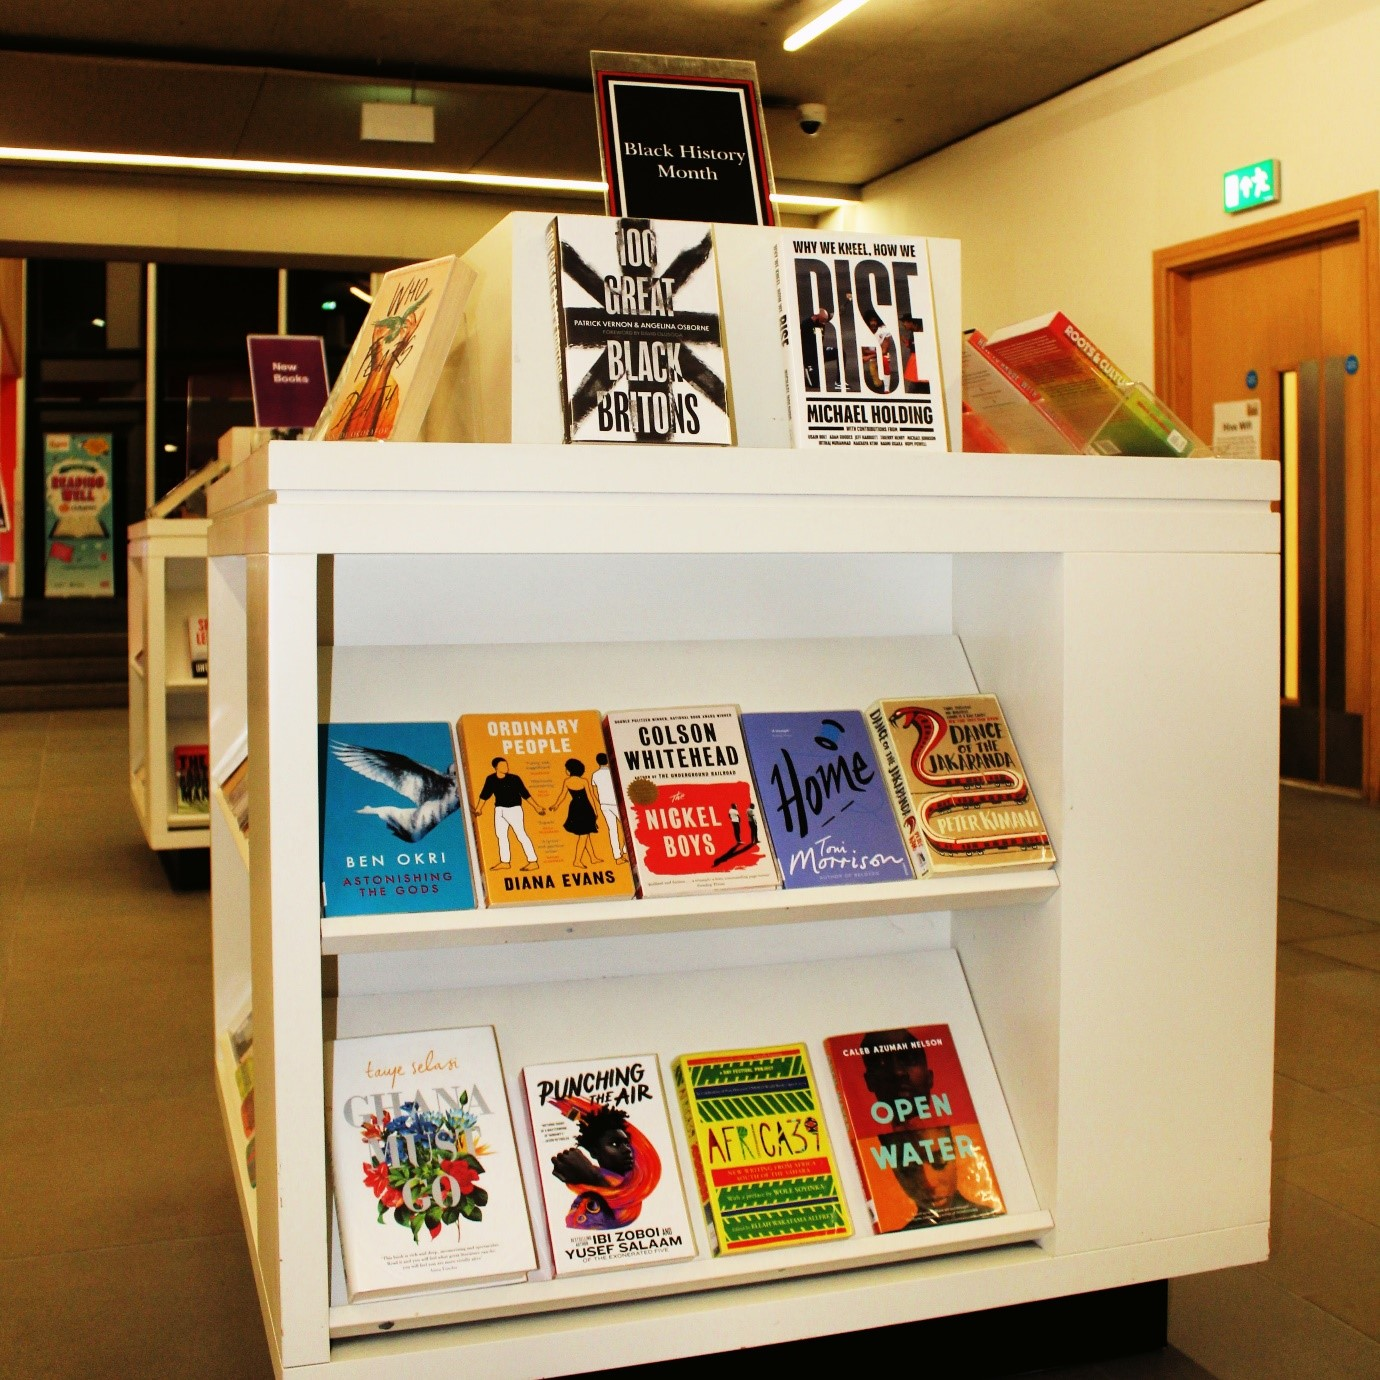 Blak History Month book display in The Hive